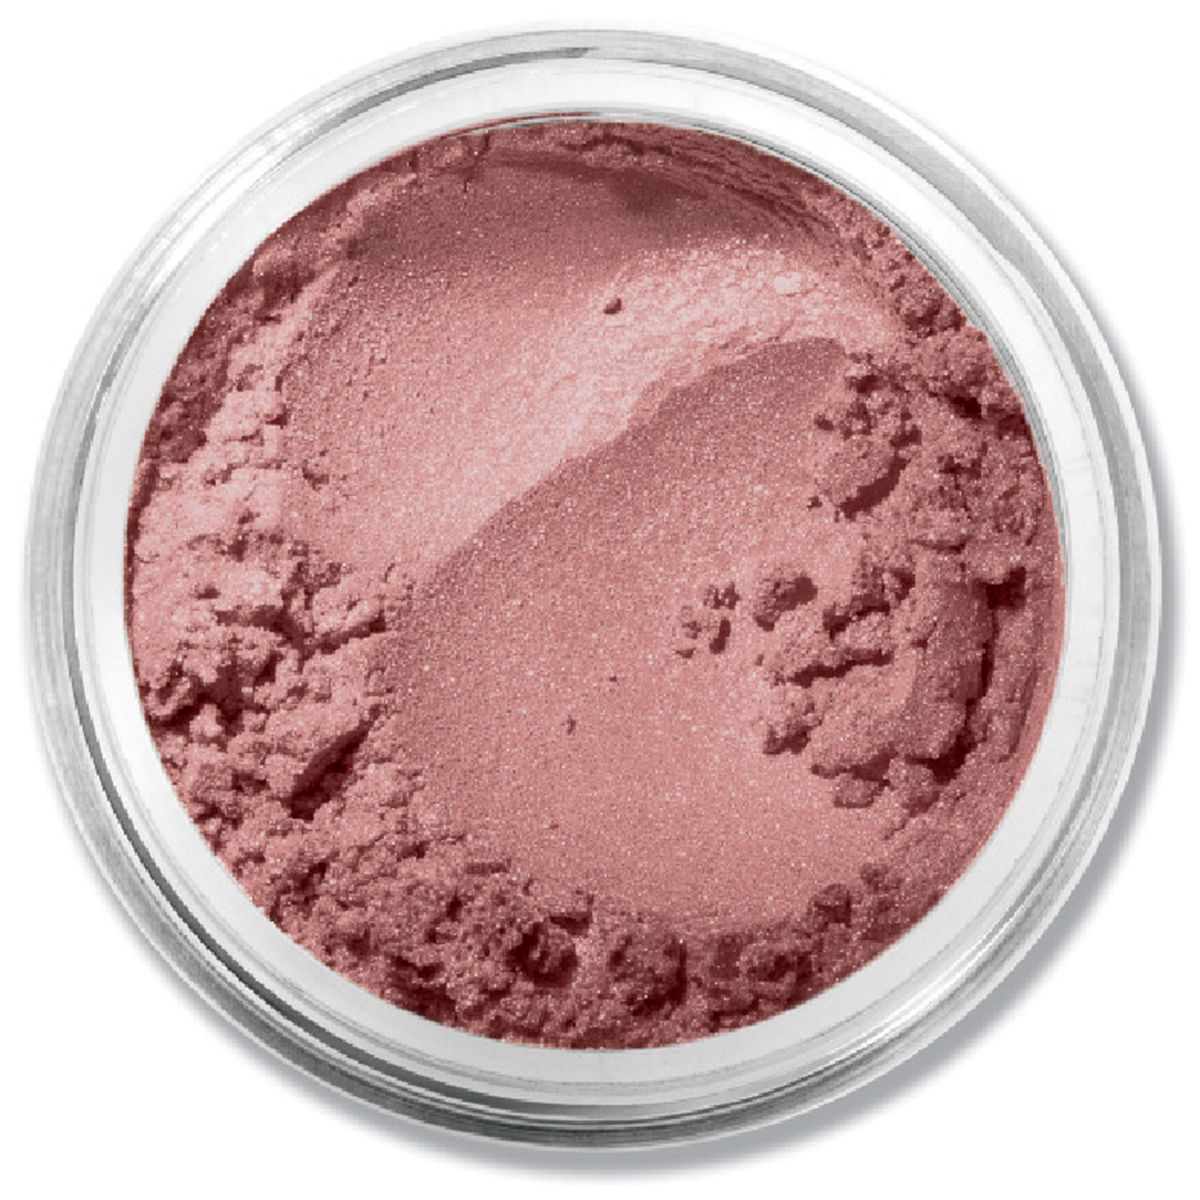 BareMinerals All Over Face Color, Glee, 0.05 Oz